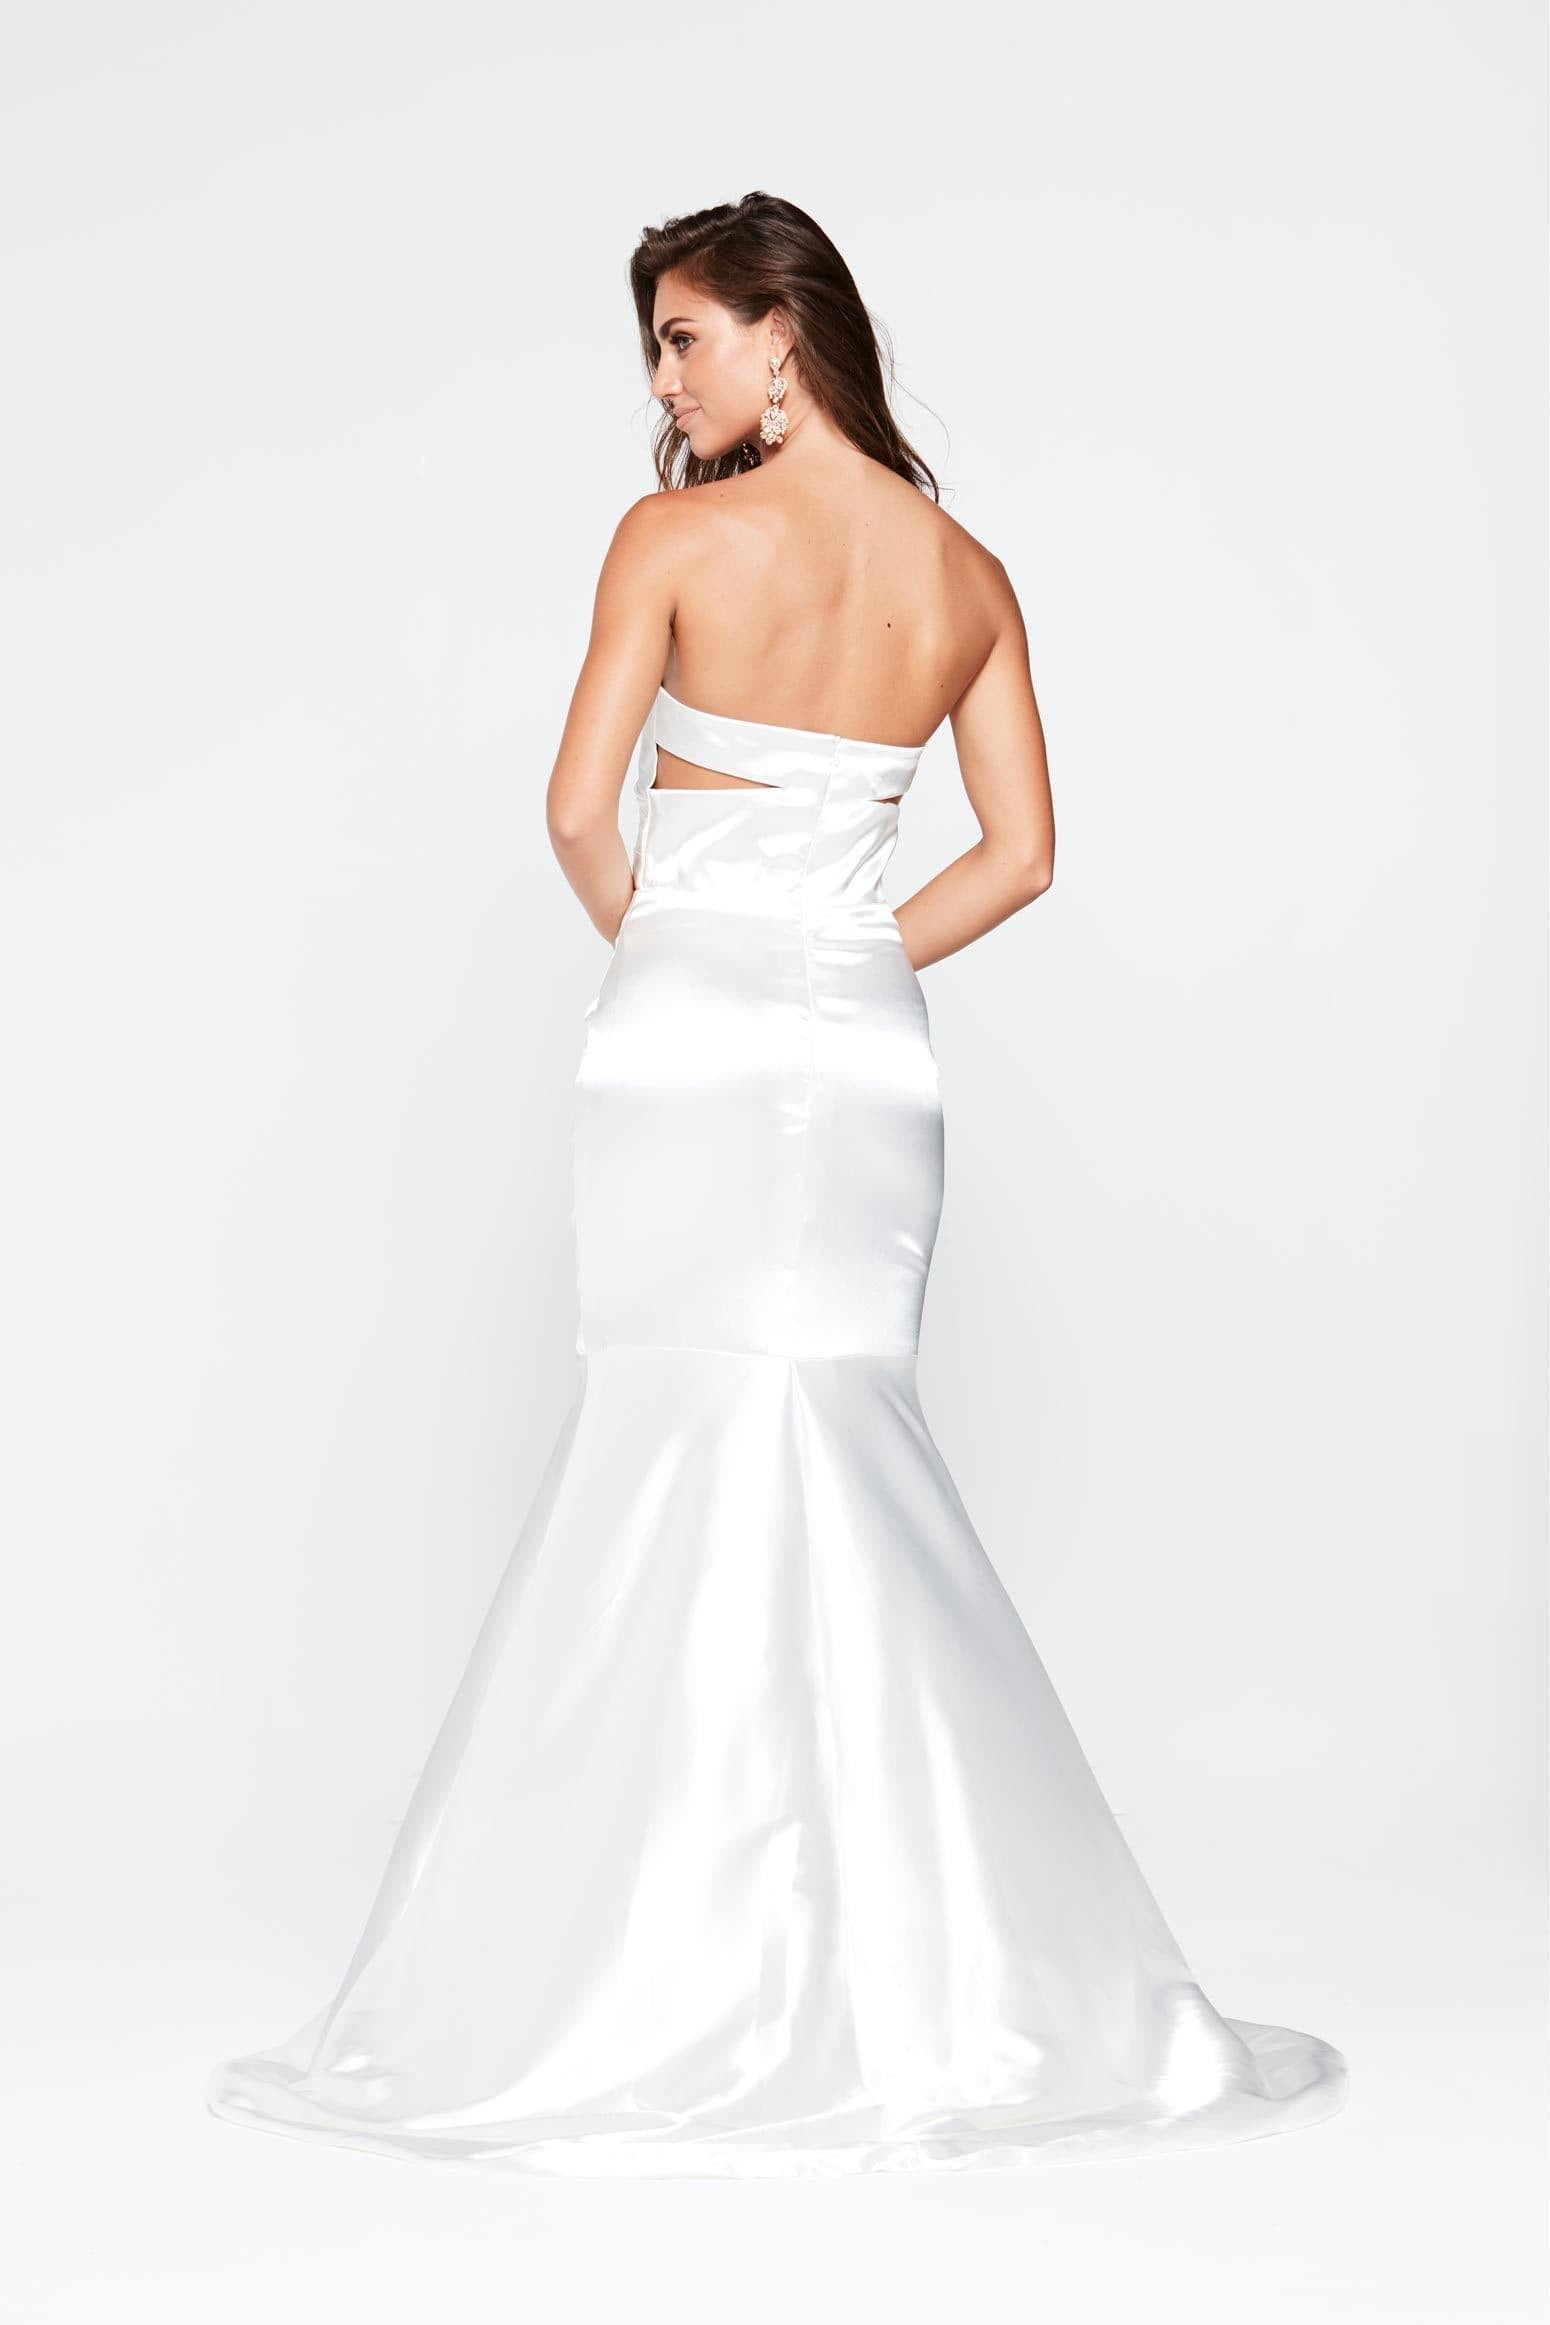 A&N Akira - White Satin Dress with Pleated Bodice and Mermaid Train